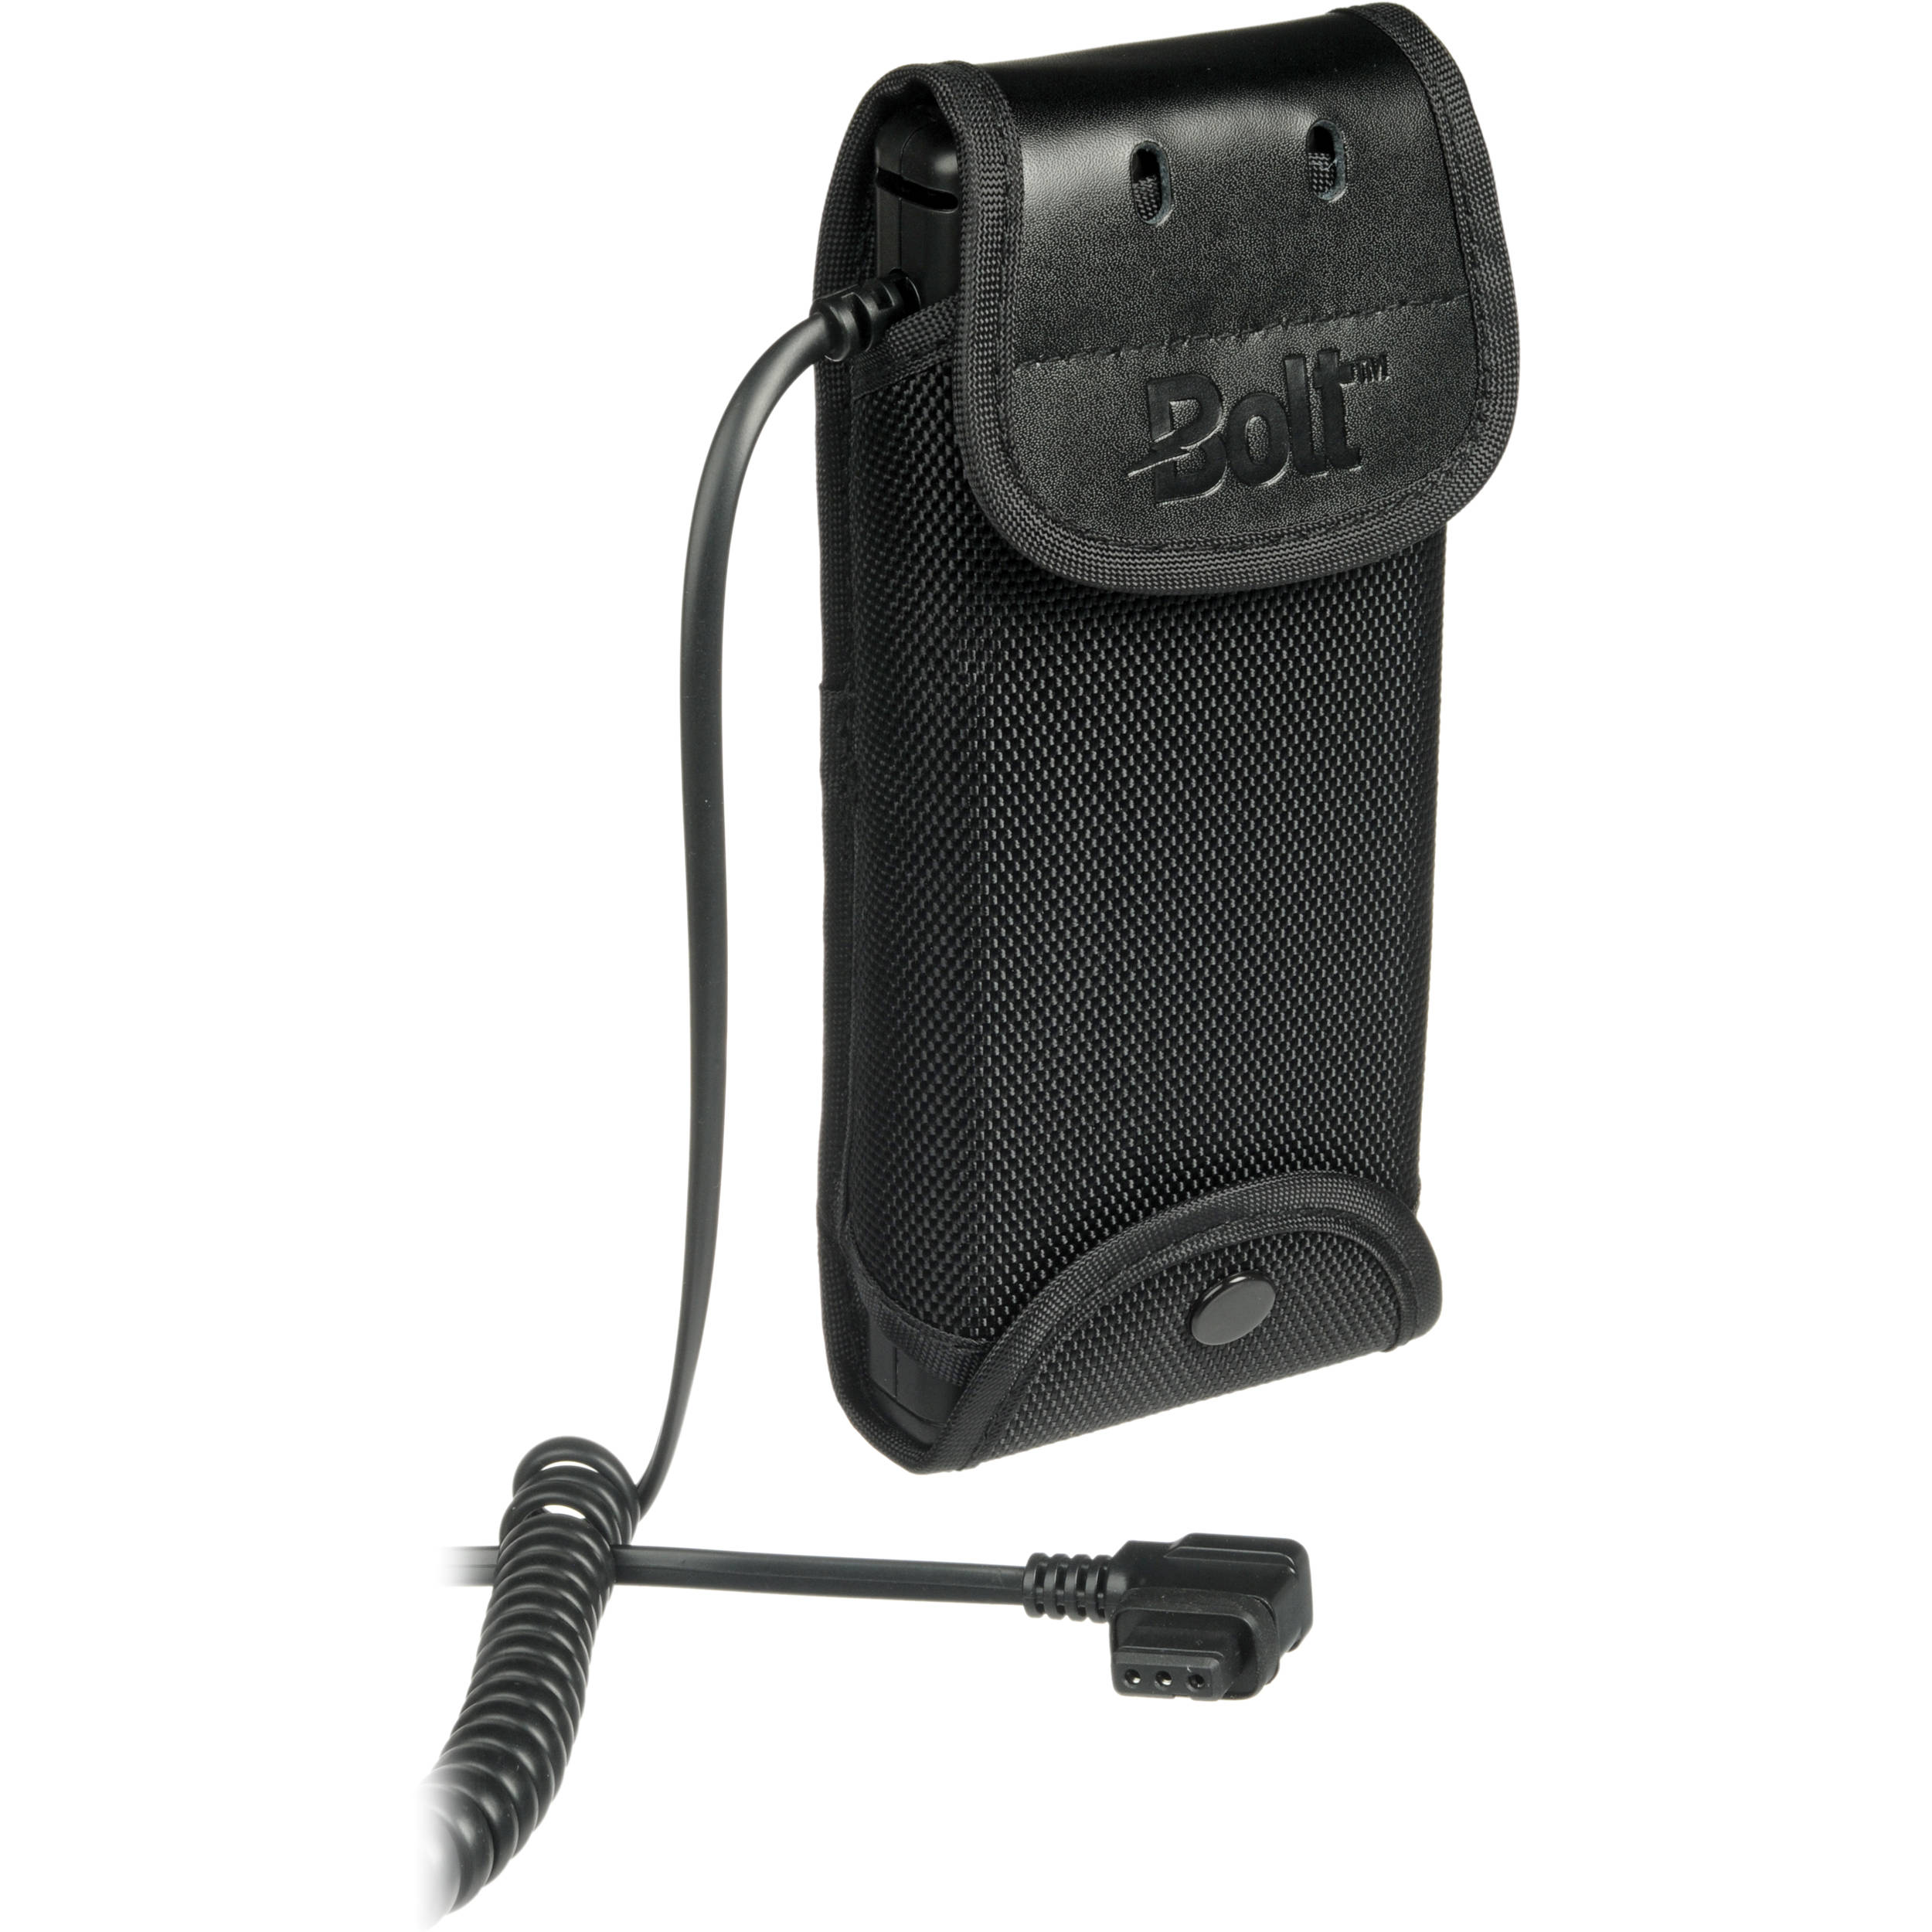 Bolt Cbp C1 Compact Battery Pack For Select Canon Random Led Flasher Circuit Simple Blinking With 1 5 Volt Flashe Vx Series Flashes